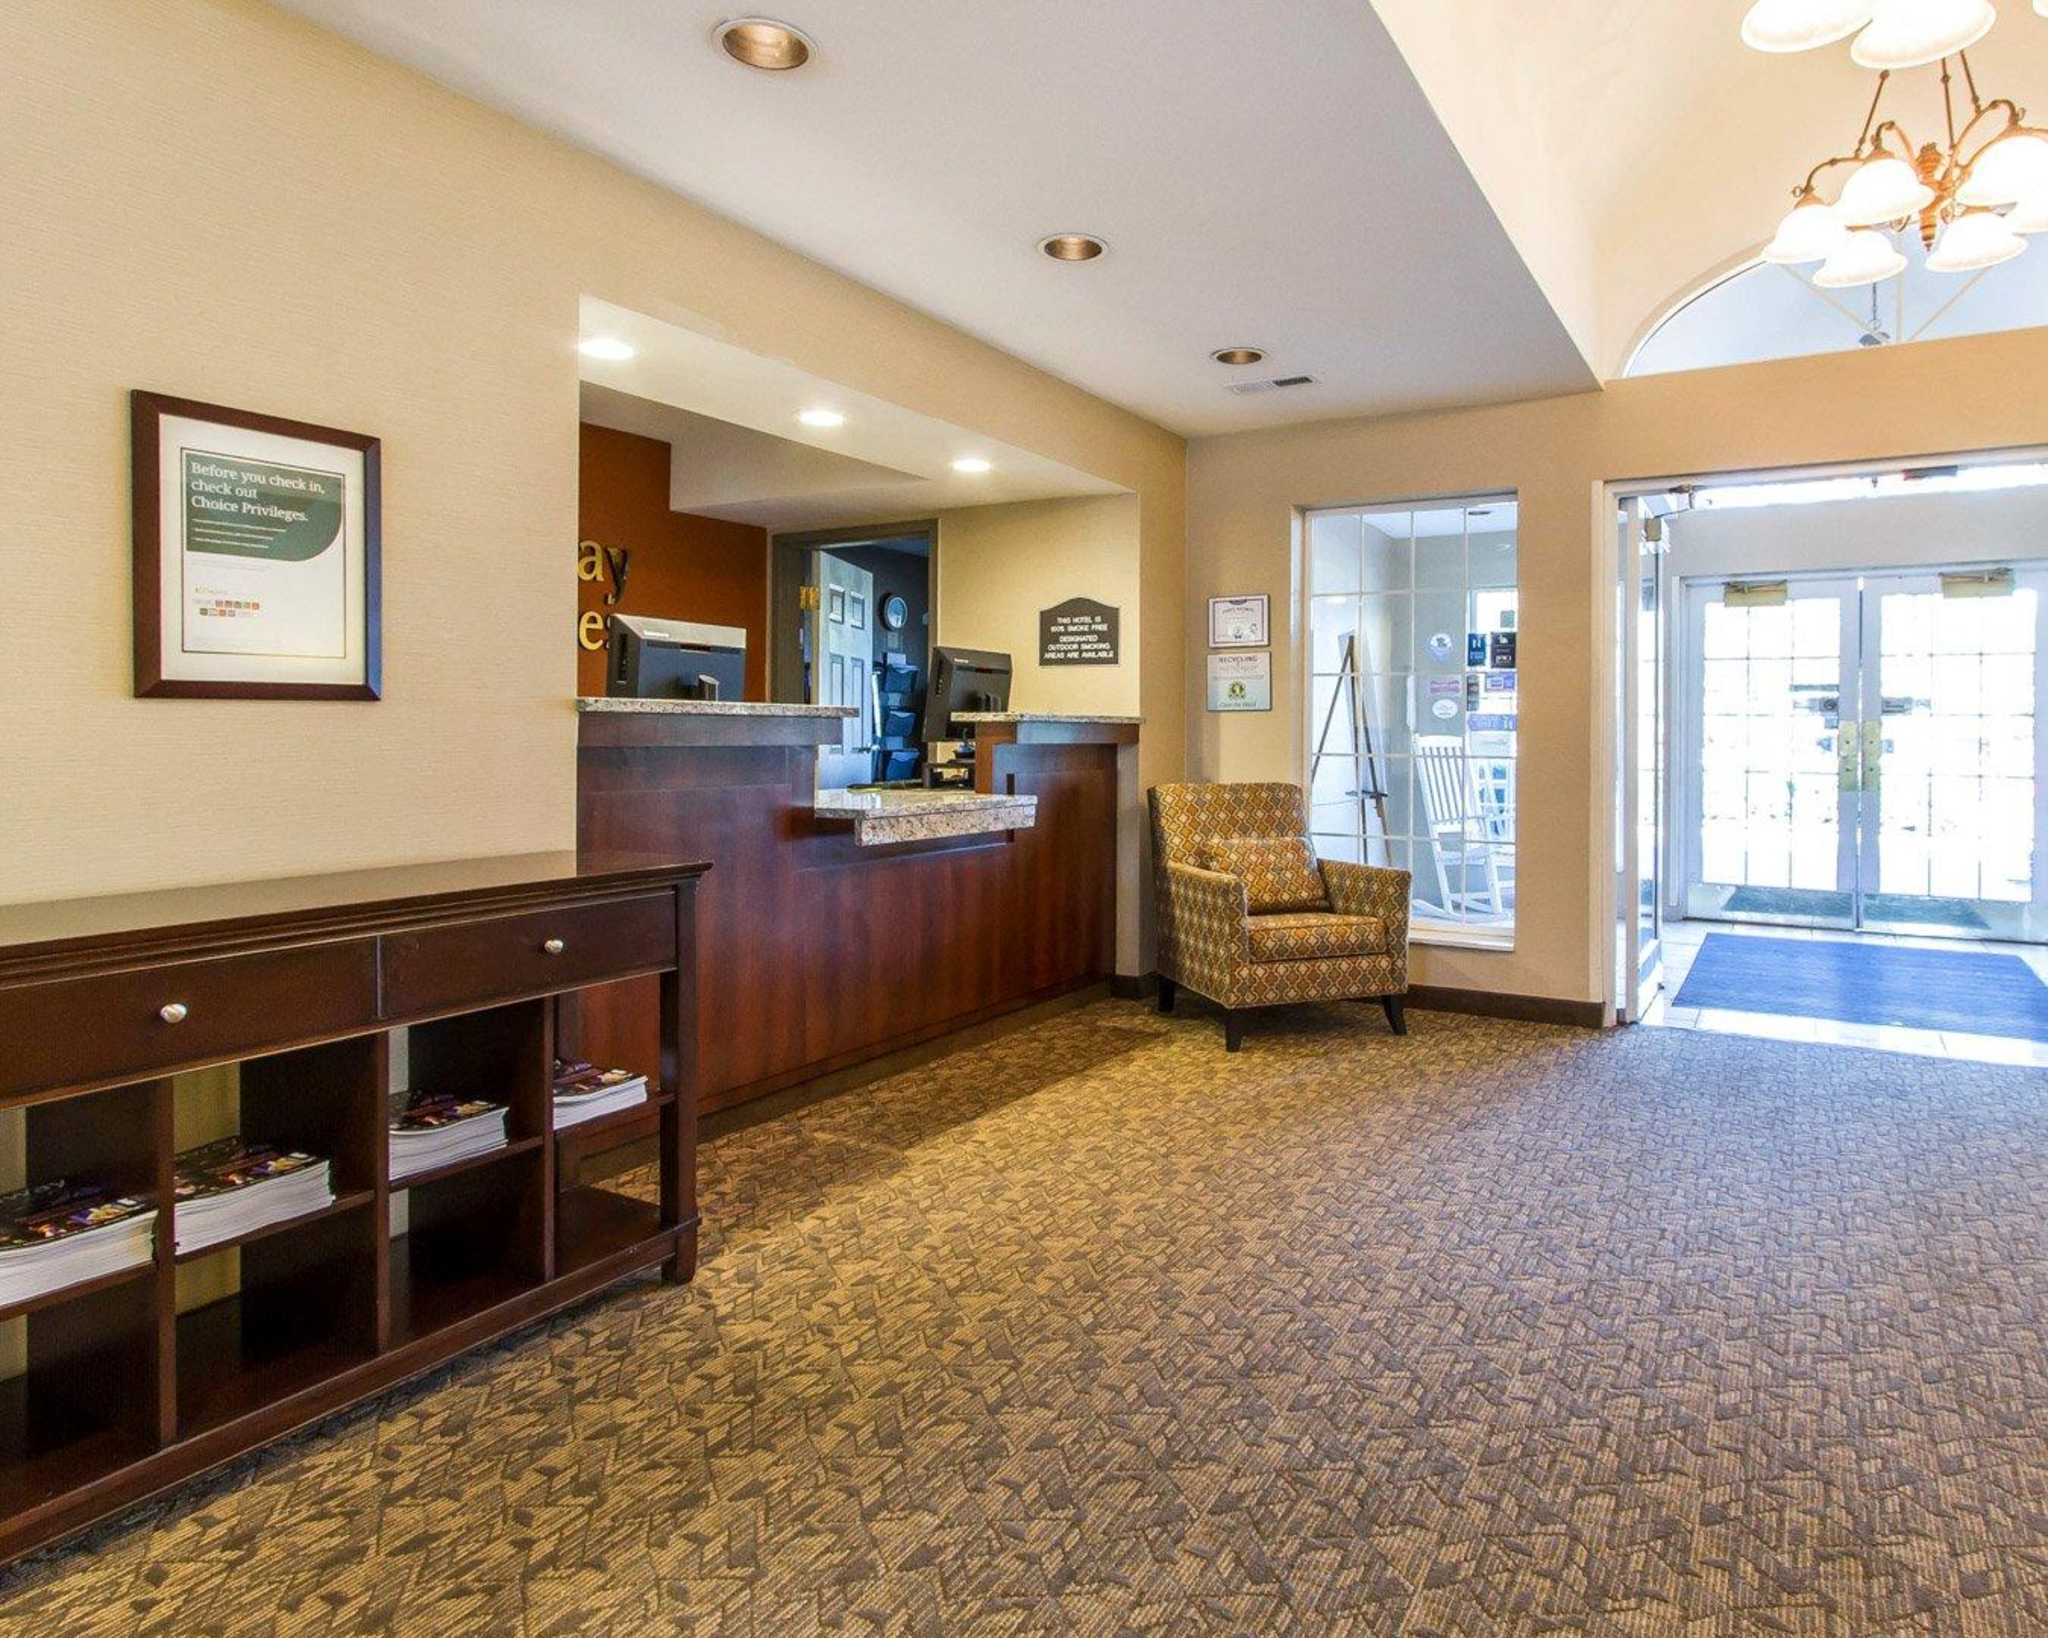 MainStay Suites image 7